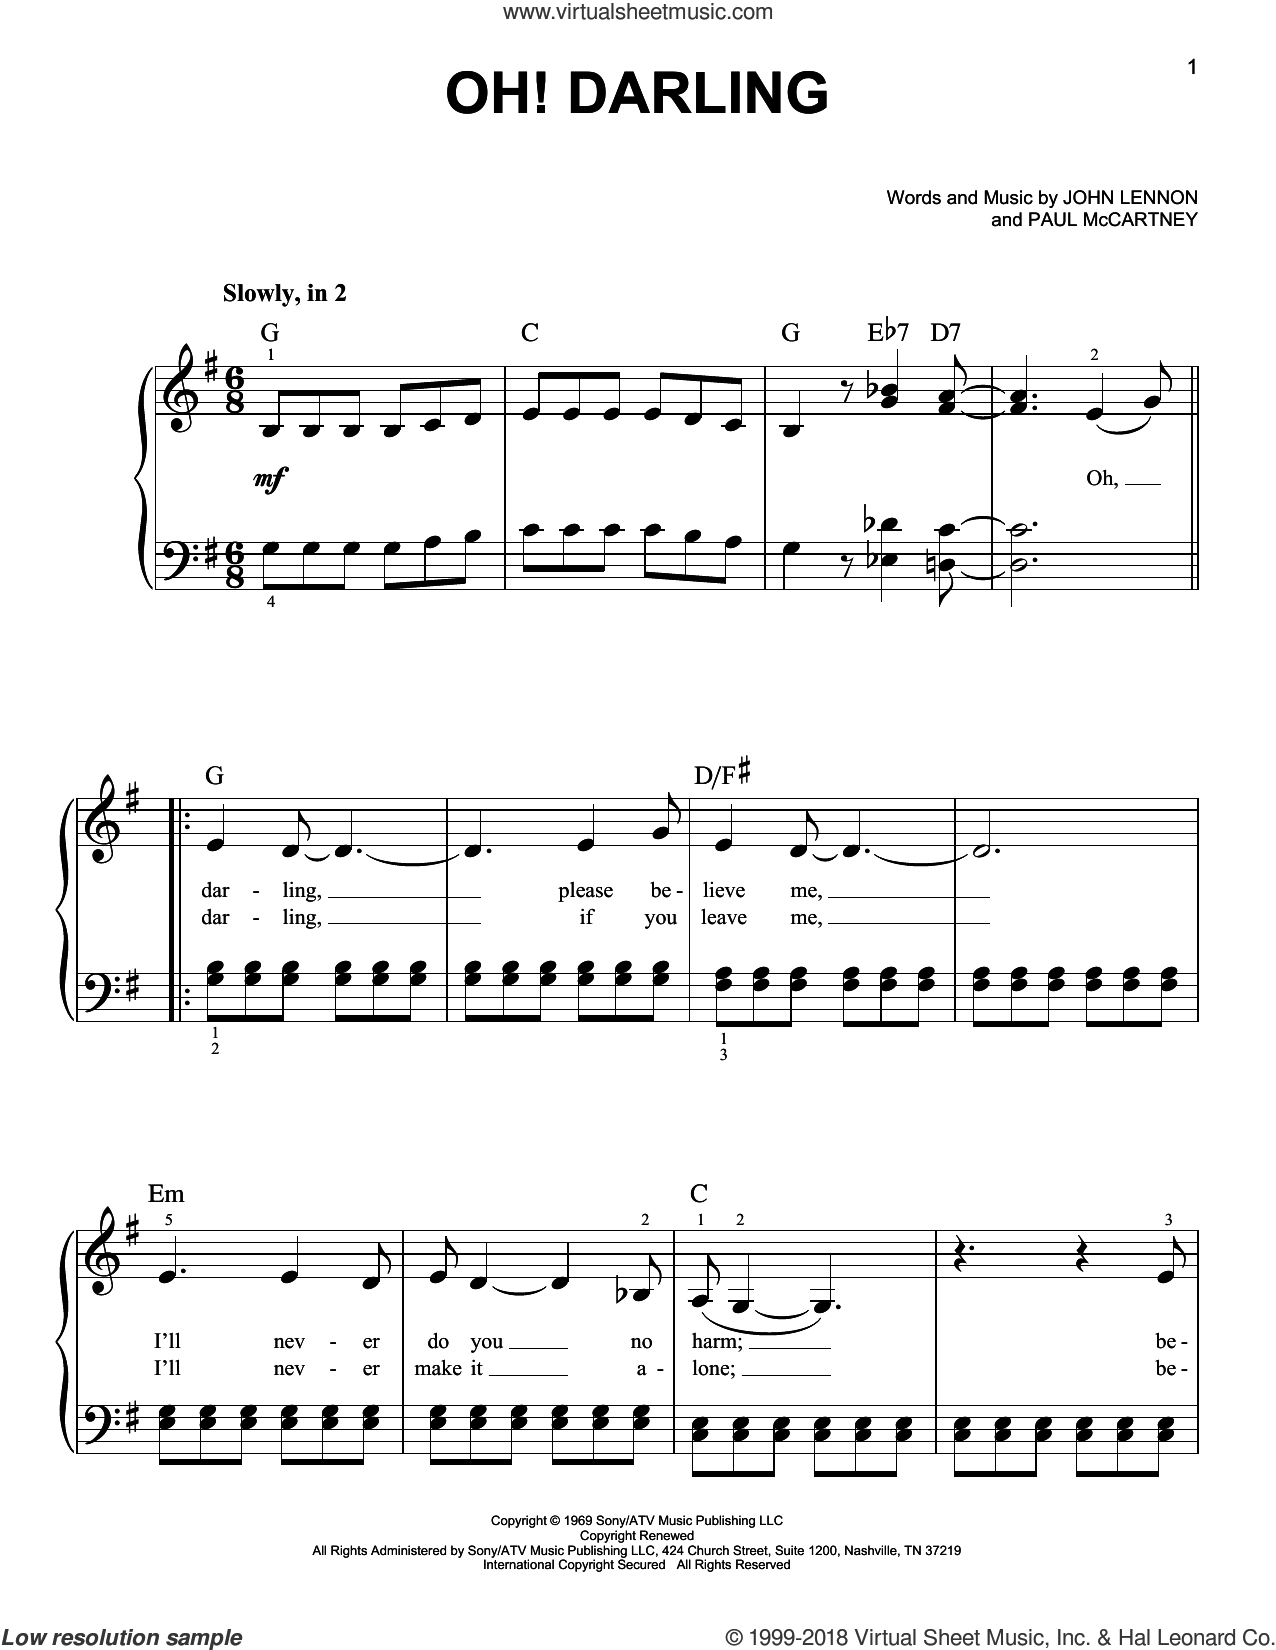 Oh! Darling sheet music for piano solo by The Beatles, Across The Universe (Movie), John Lennon and Paul McCartney, easy skill level